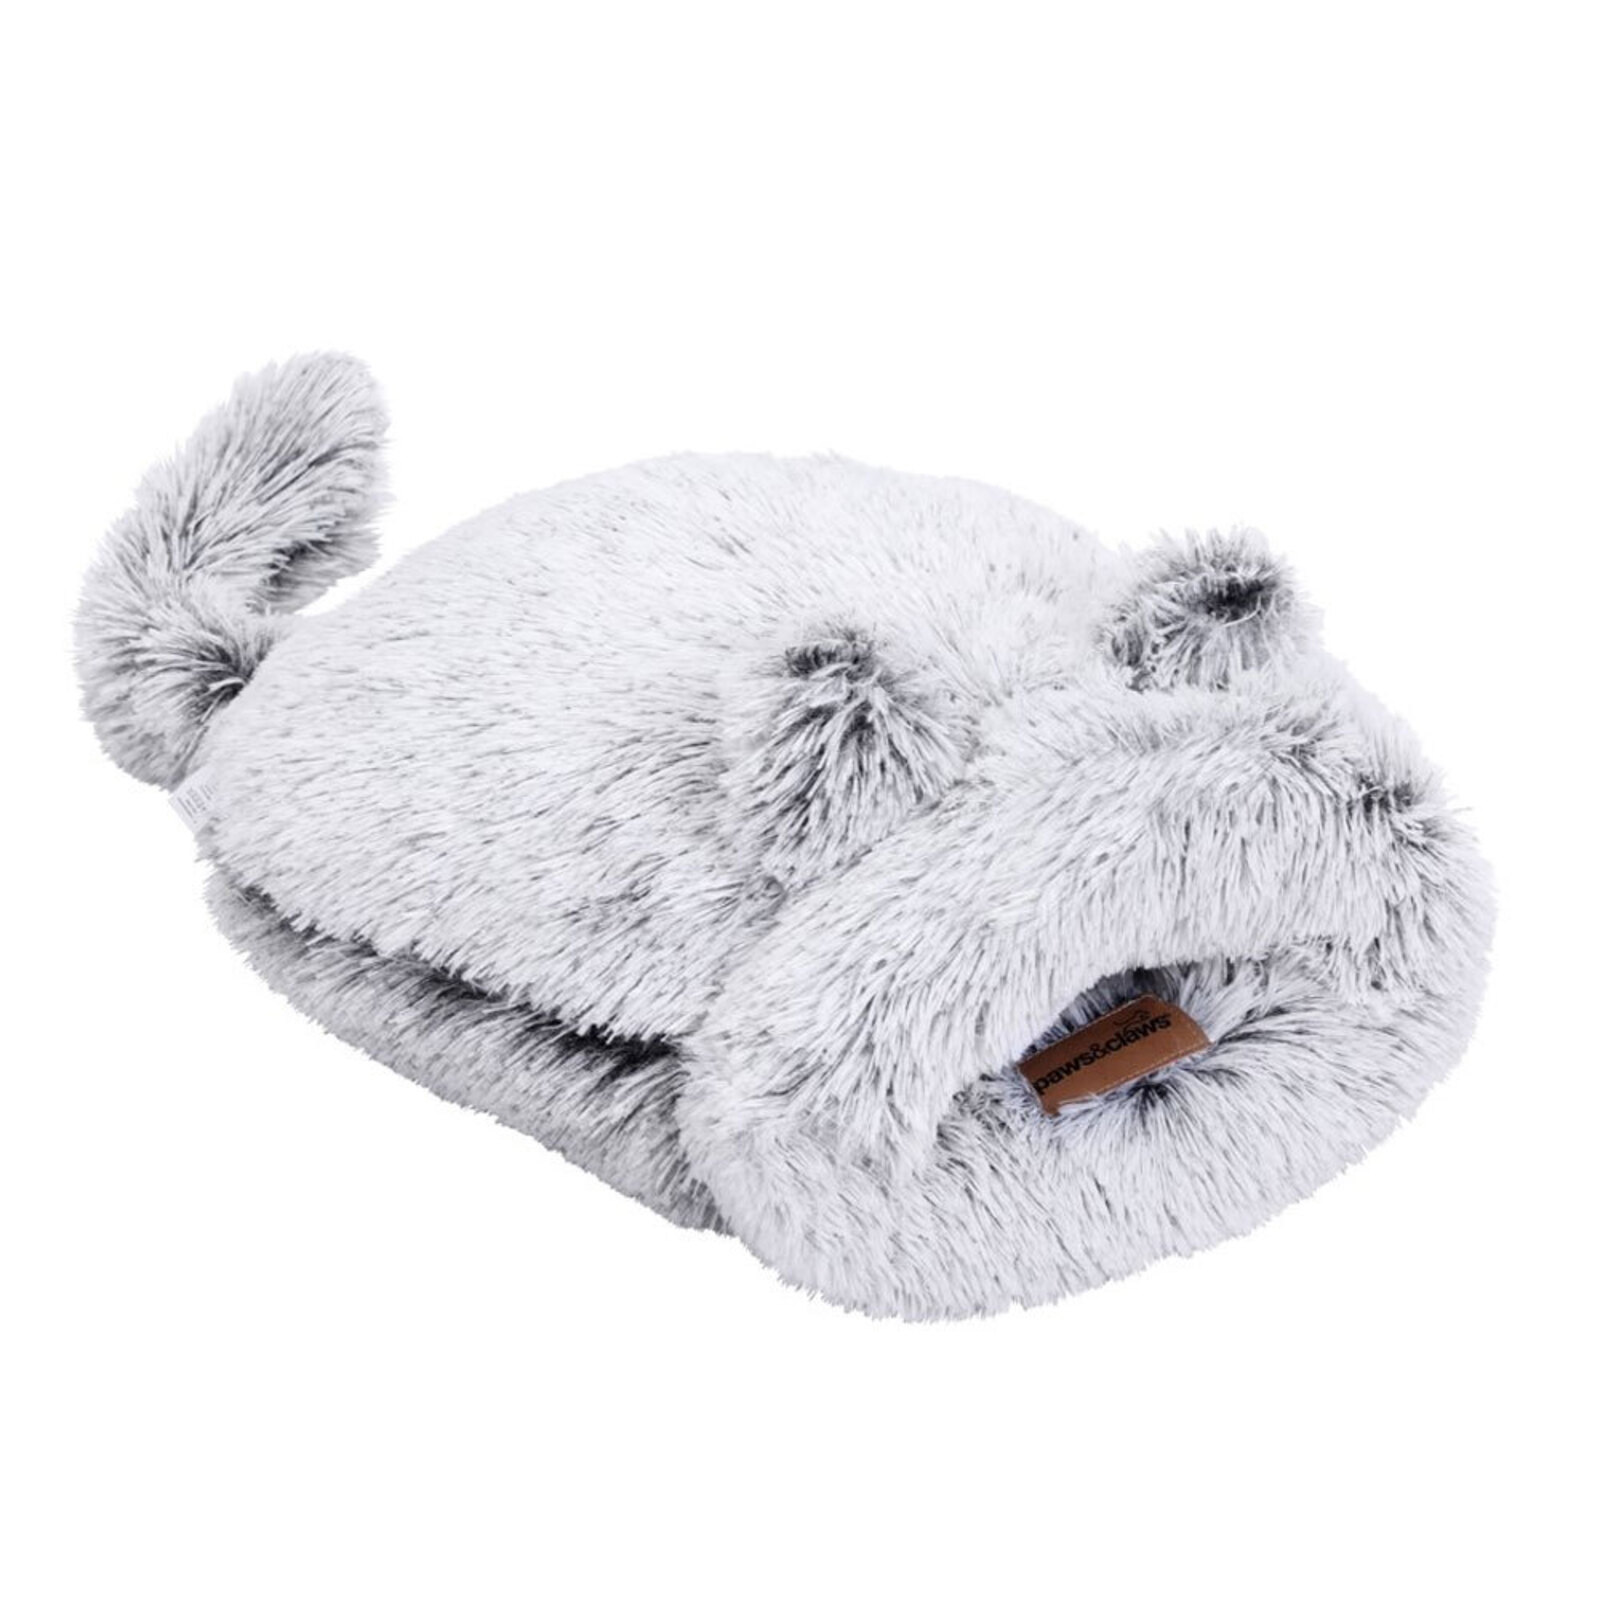 Paws & Claws 50x50cm Calming Cat/Pet/Kitten Plush Washable Snuggler Bed Grey